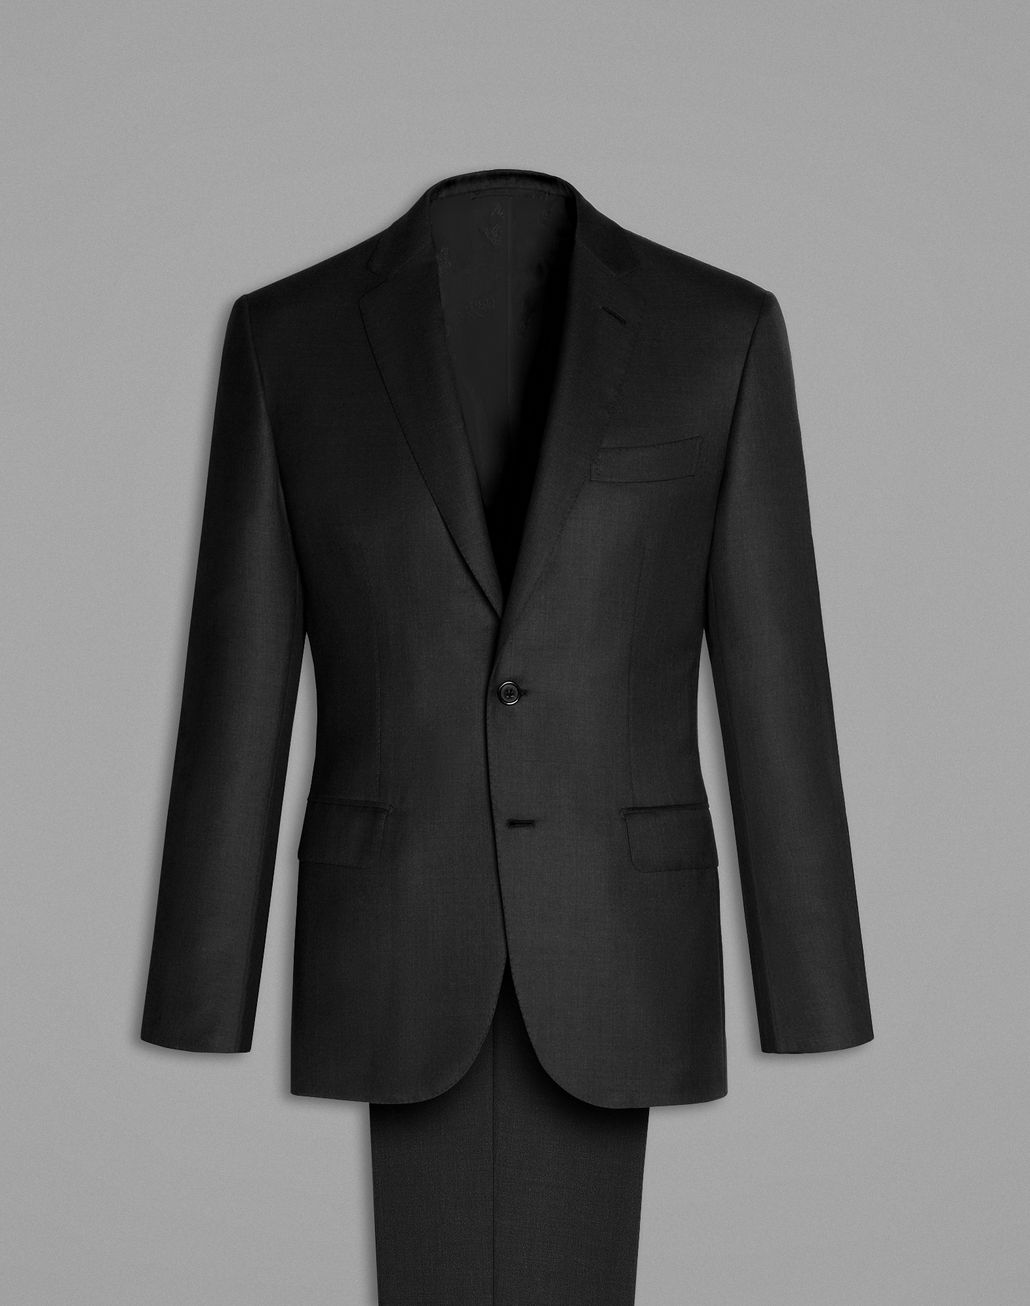 BRIONI Costume Madison noir Suits & Jackets Homme f